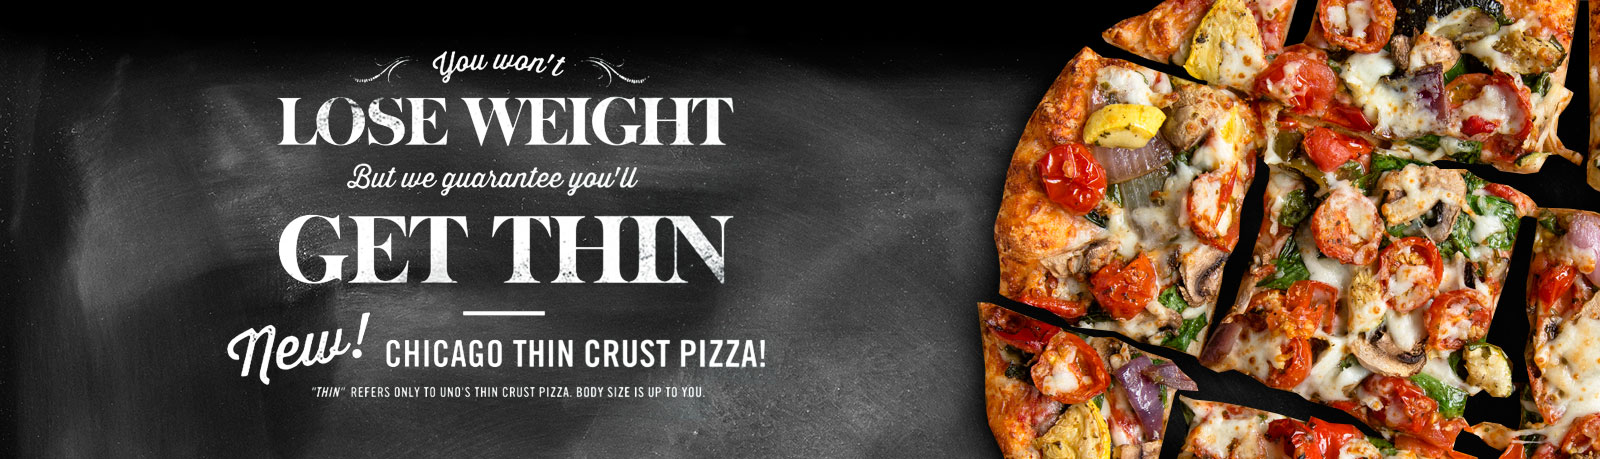 New Chicaco Thin Crust Pizza